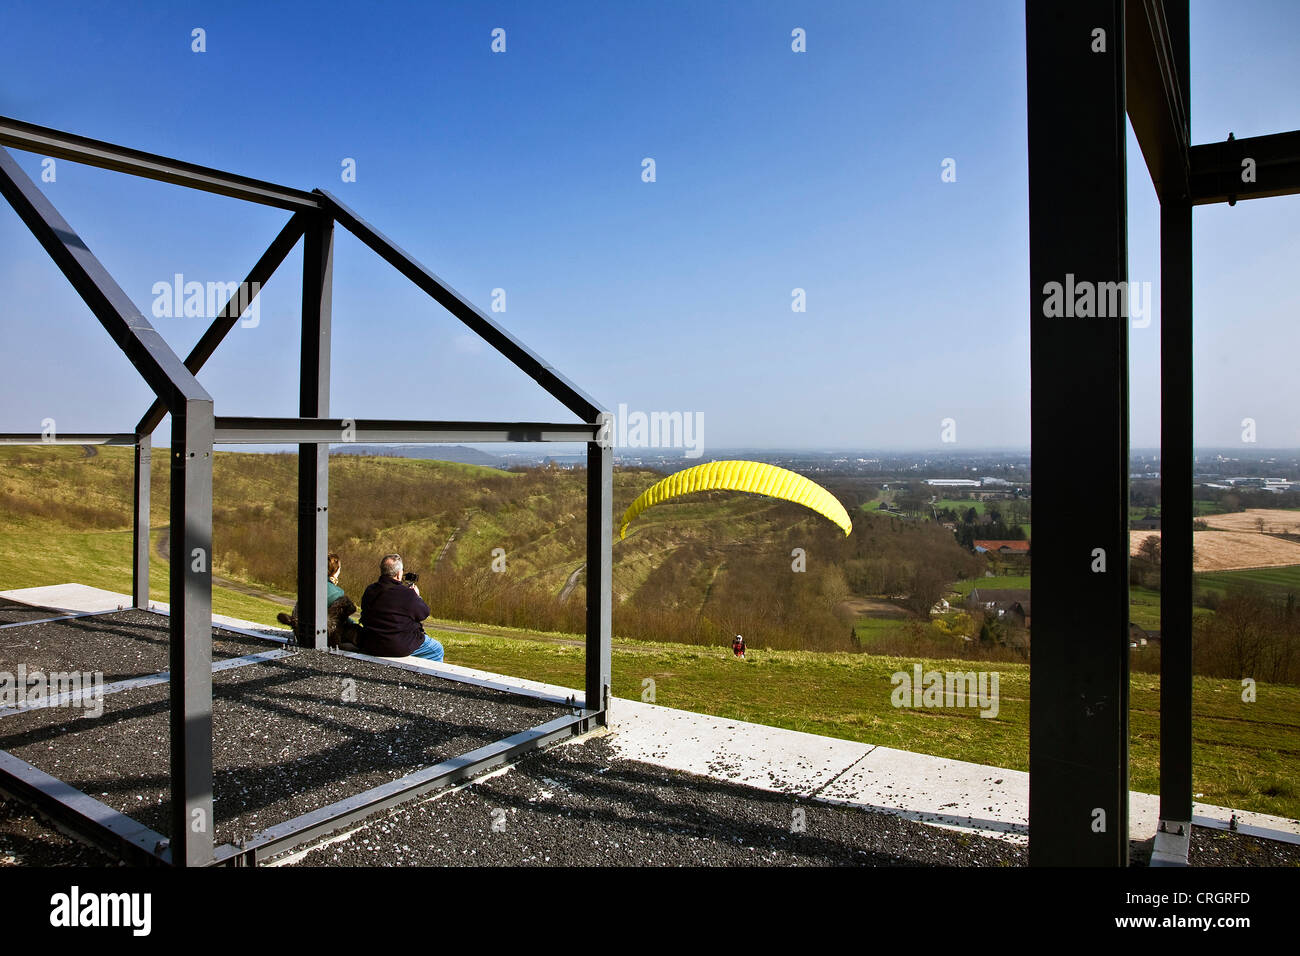 two people watching a Paraglider starting on Norddeutschland stockpile, Germany, North Rhine-Westphalia, Neukirchen - Stock Image